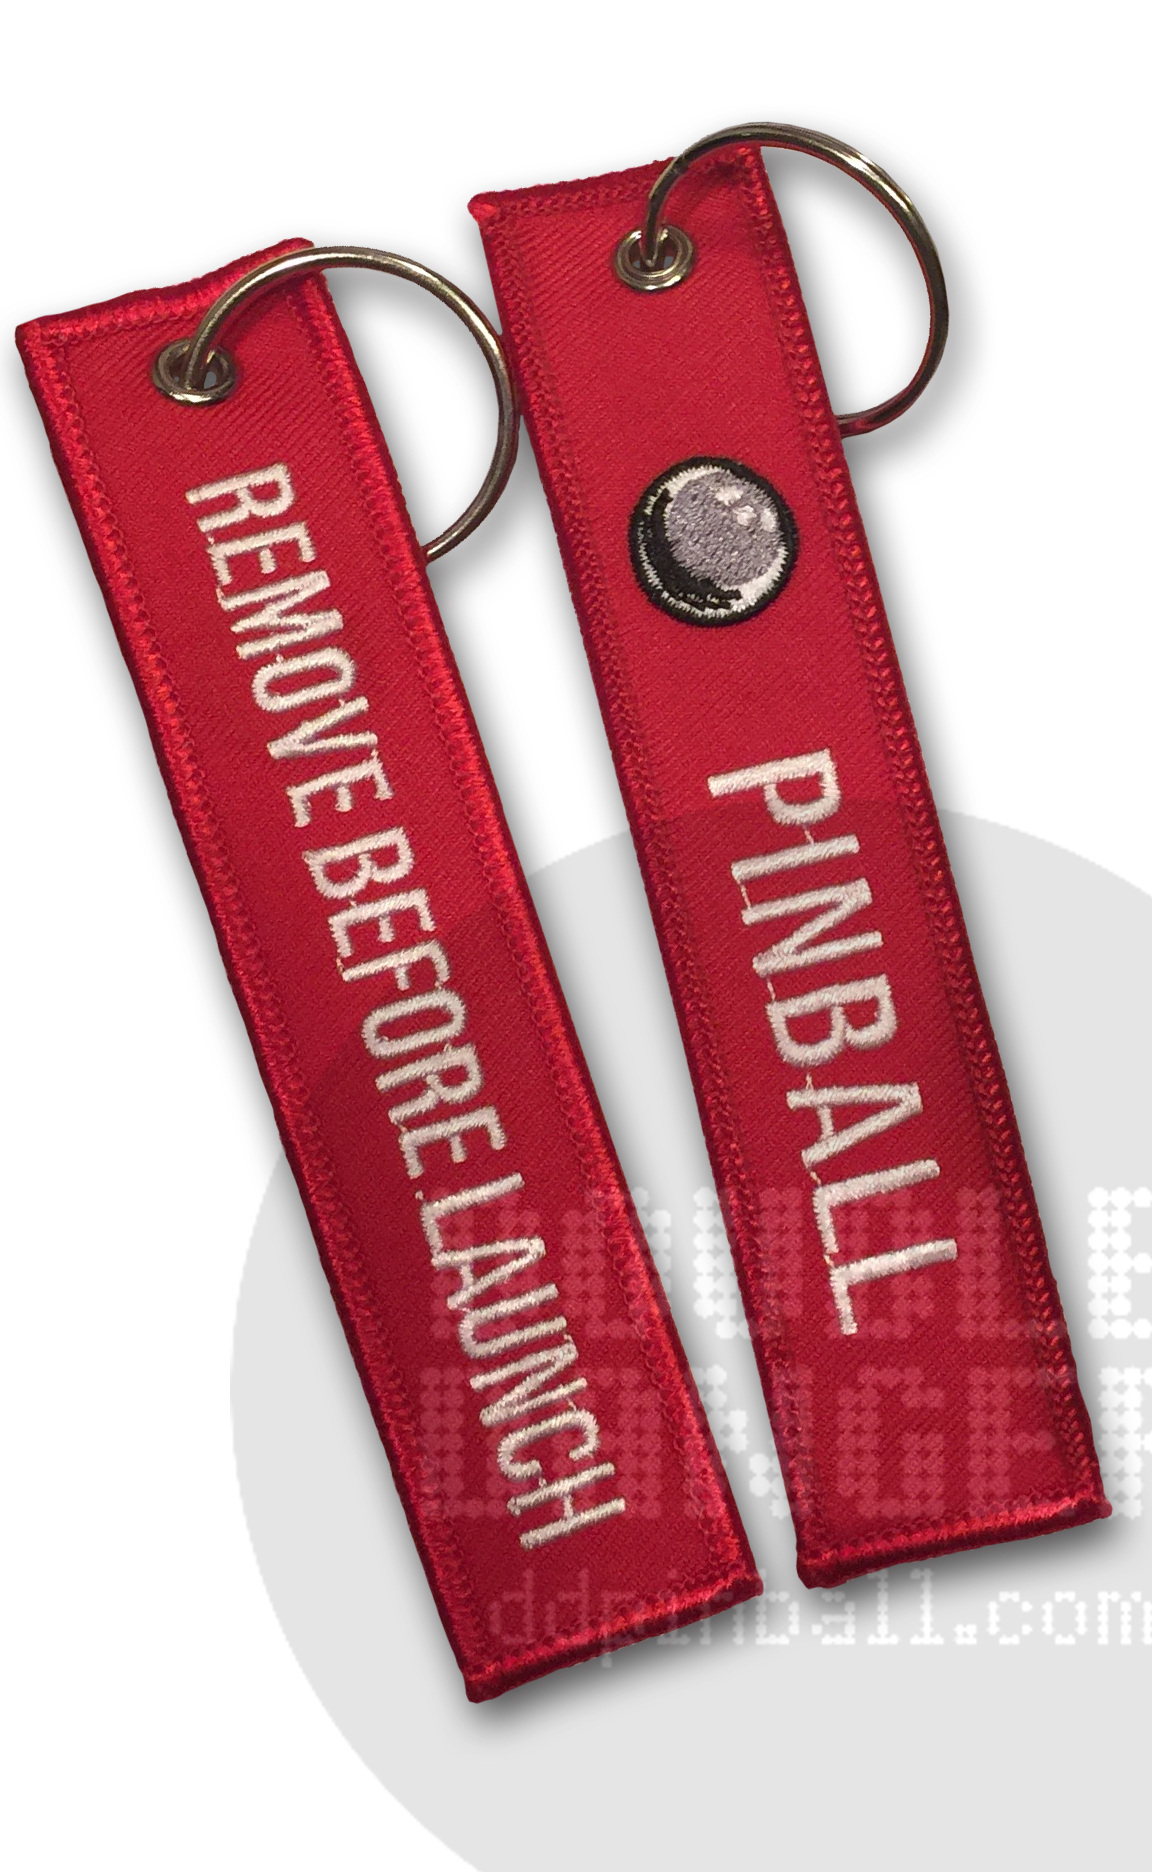 Pinball/Remove Before Launch Red Key Fob — Double Danger Pinball